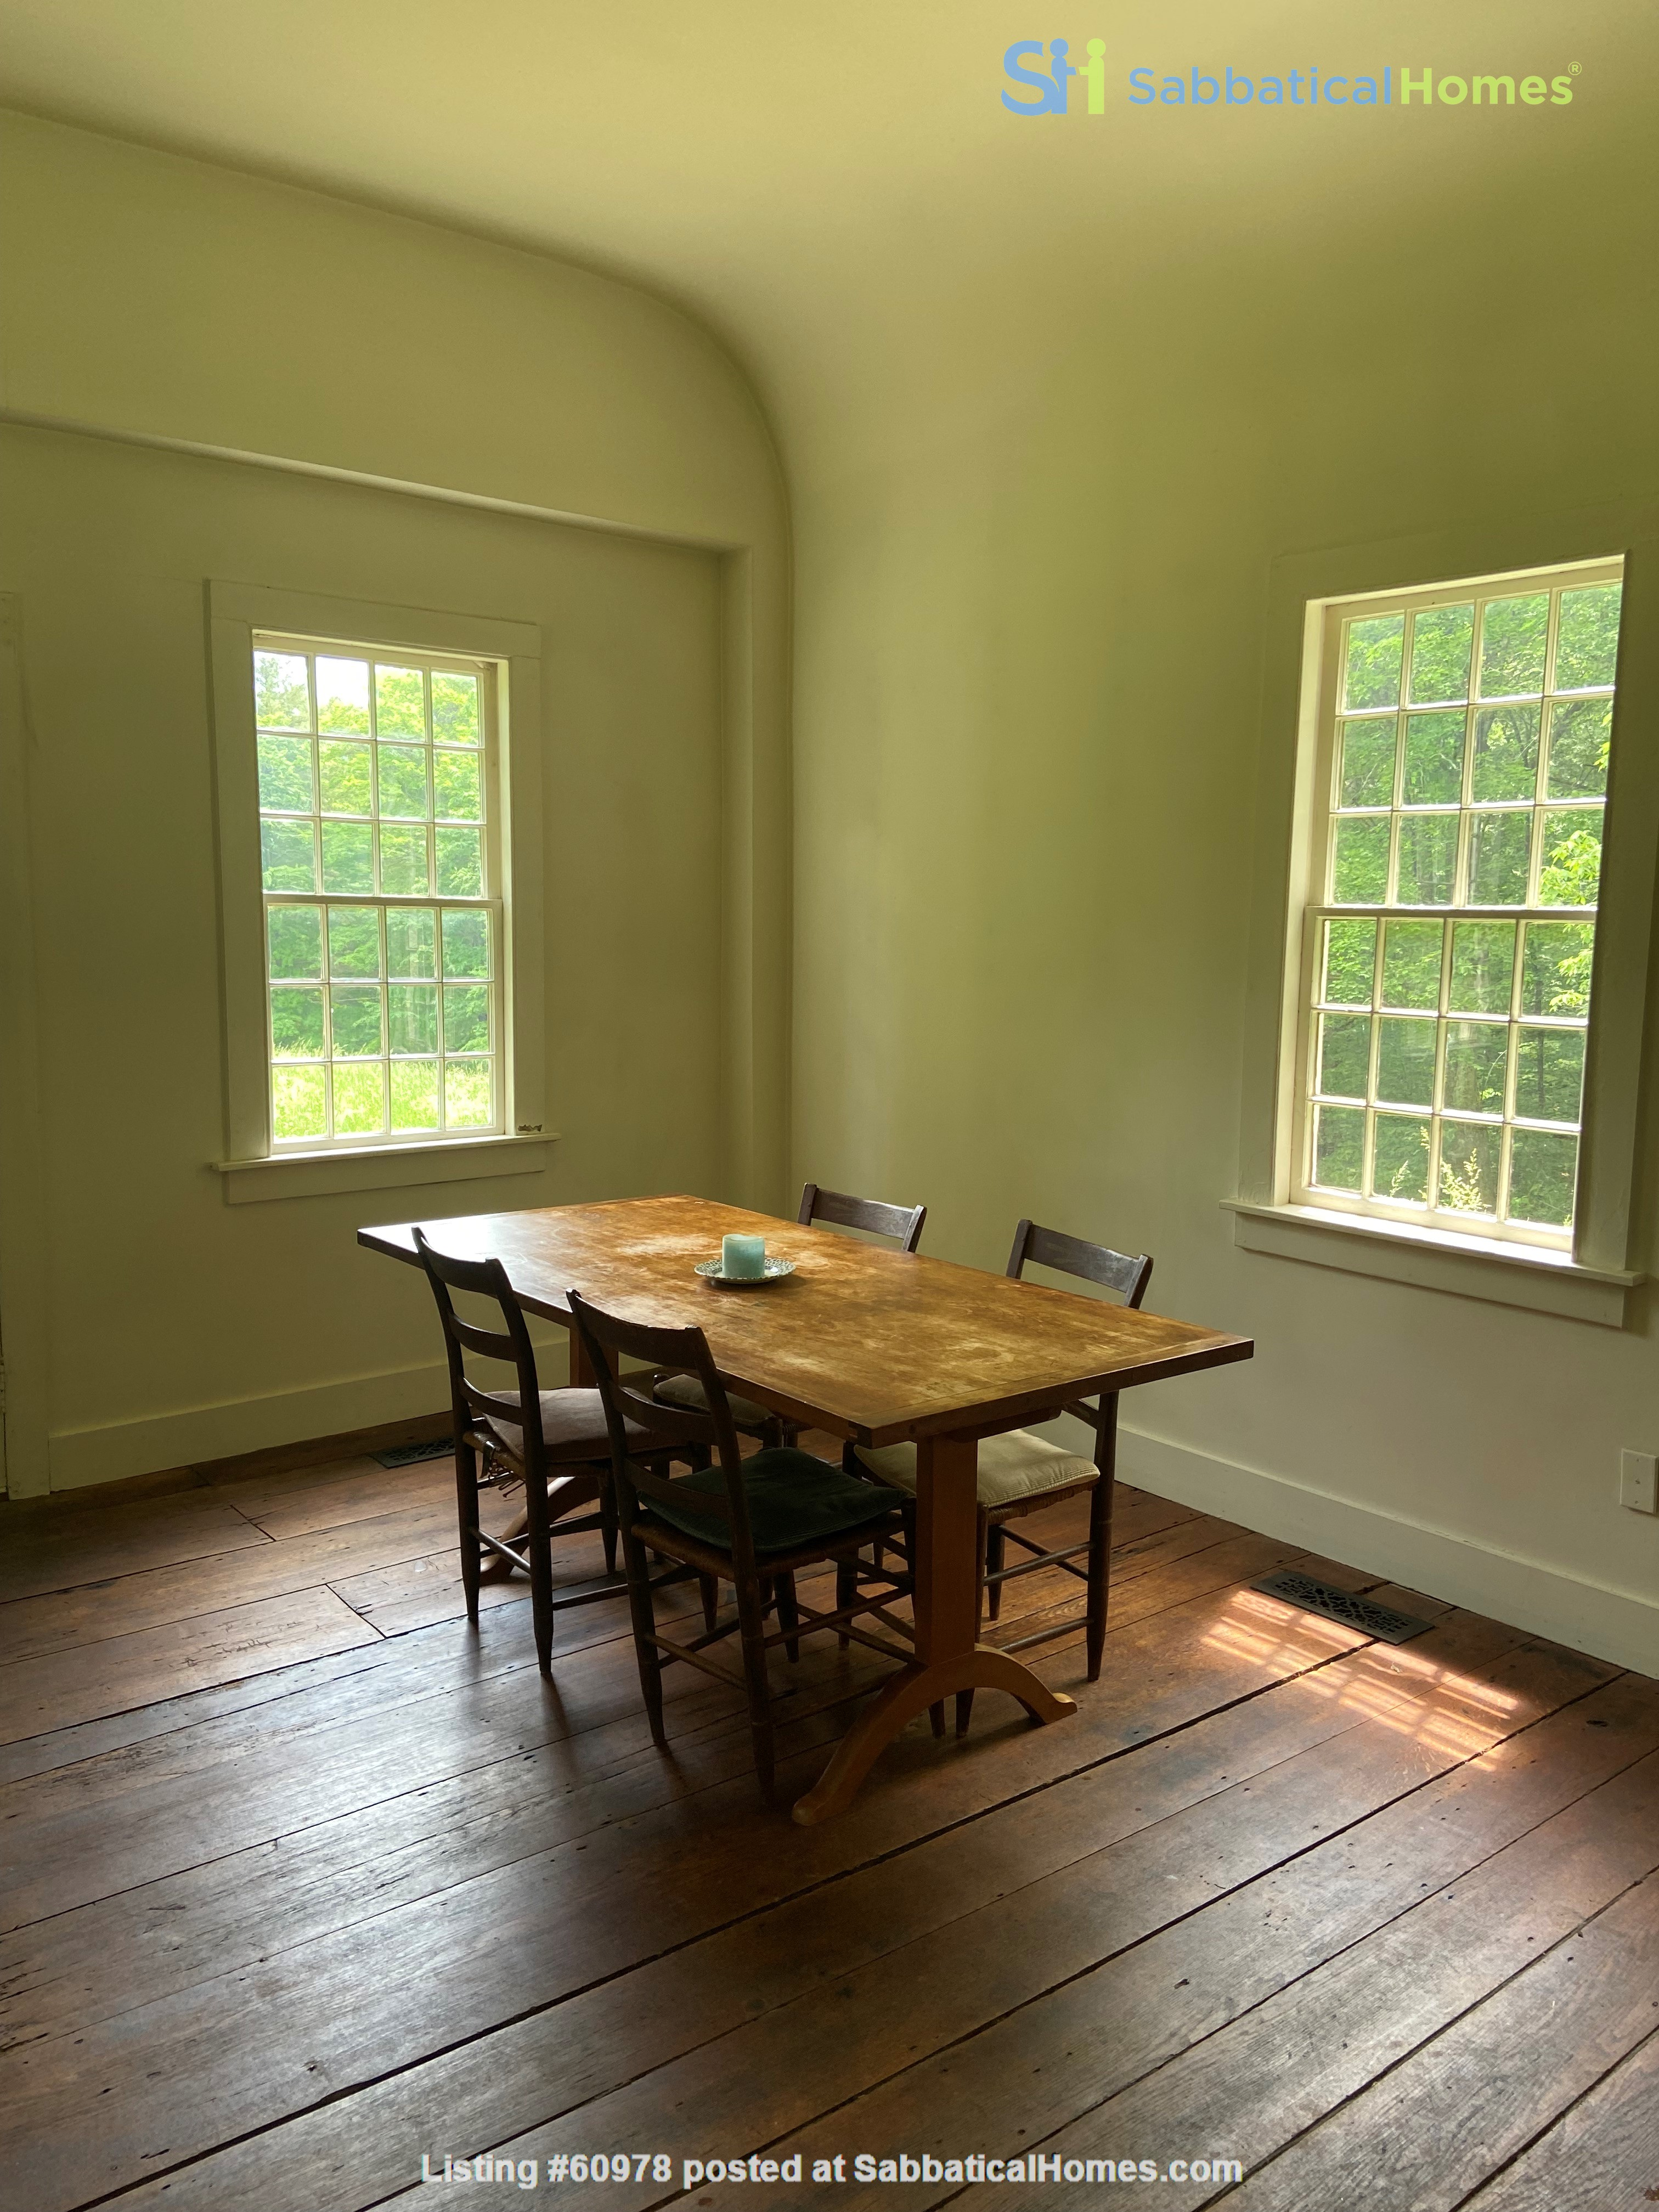 Writer's Retreat -- Idyllic Rural Cabin Home Rental in Cornwall, Connecticut, United States 1